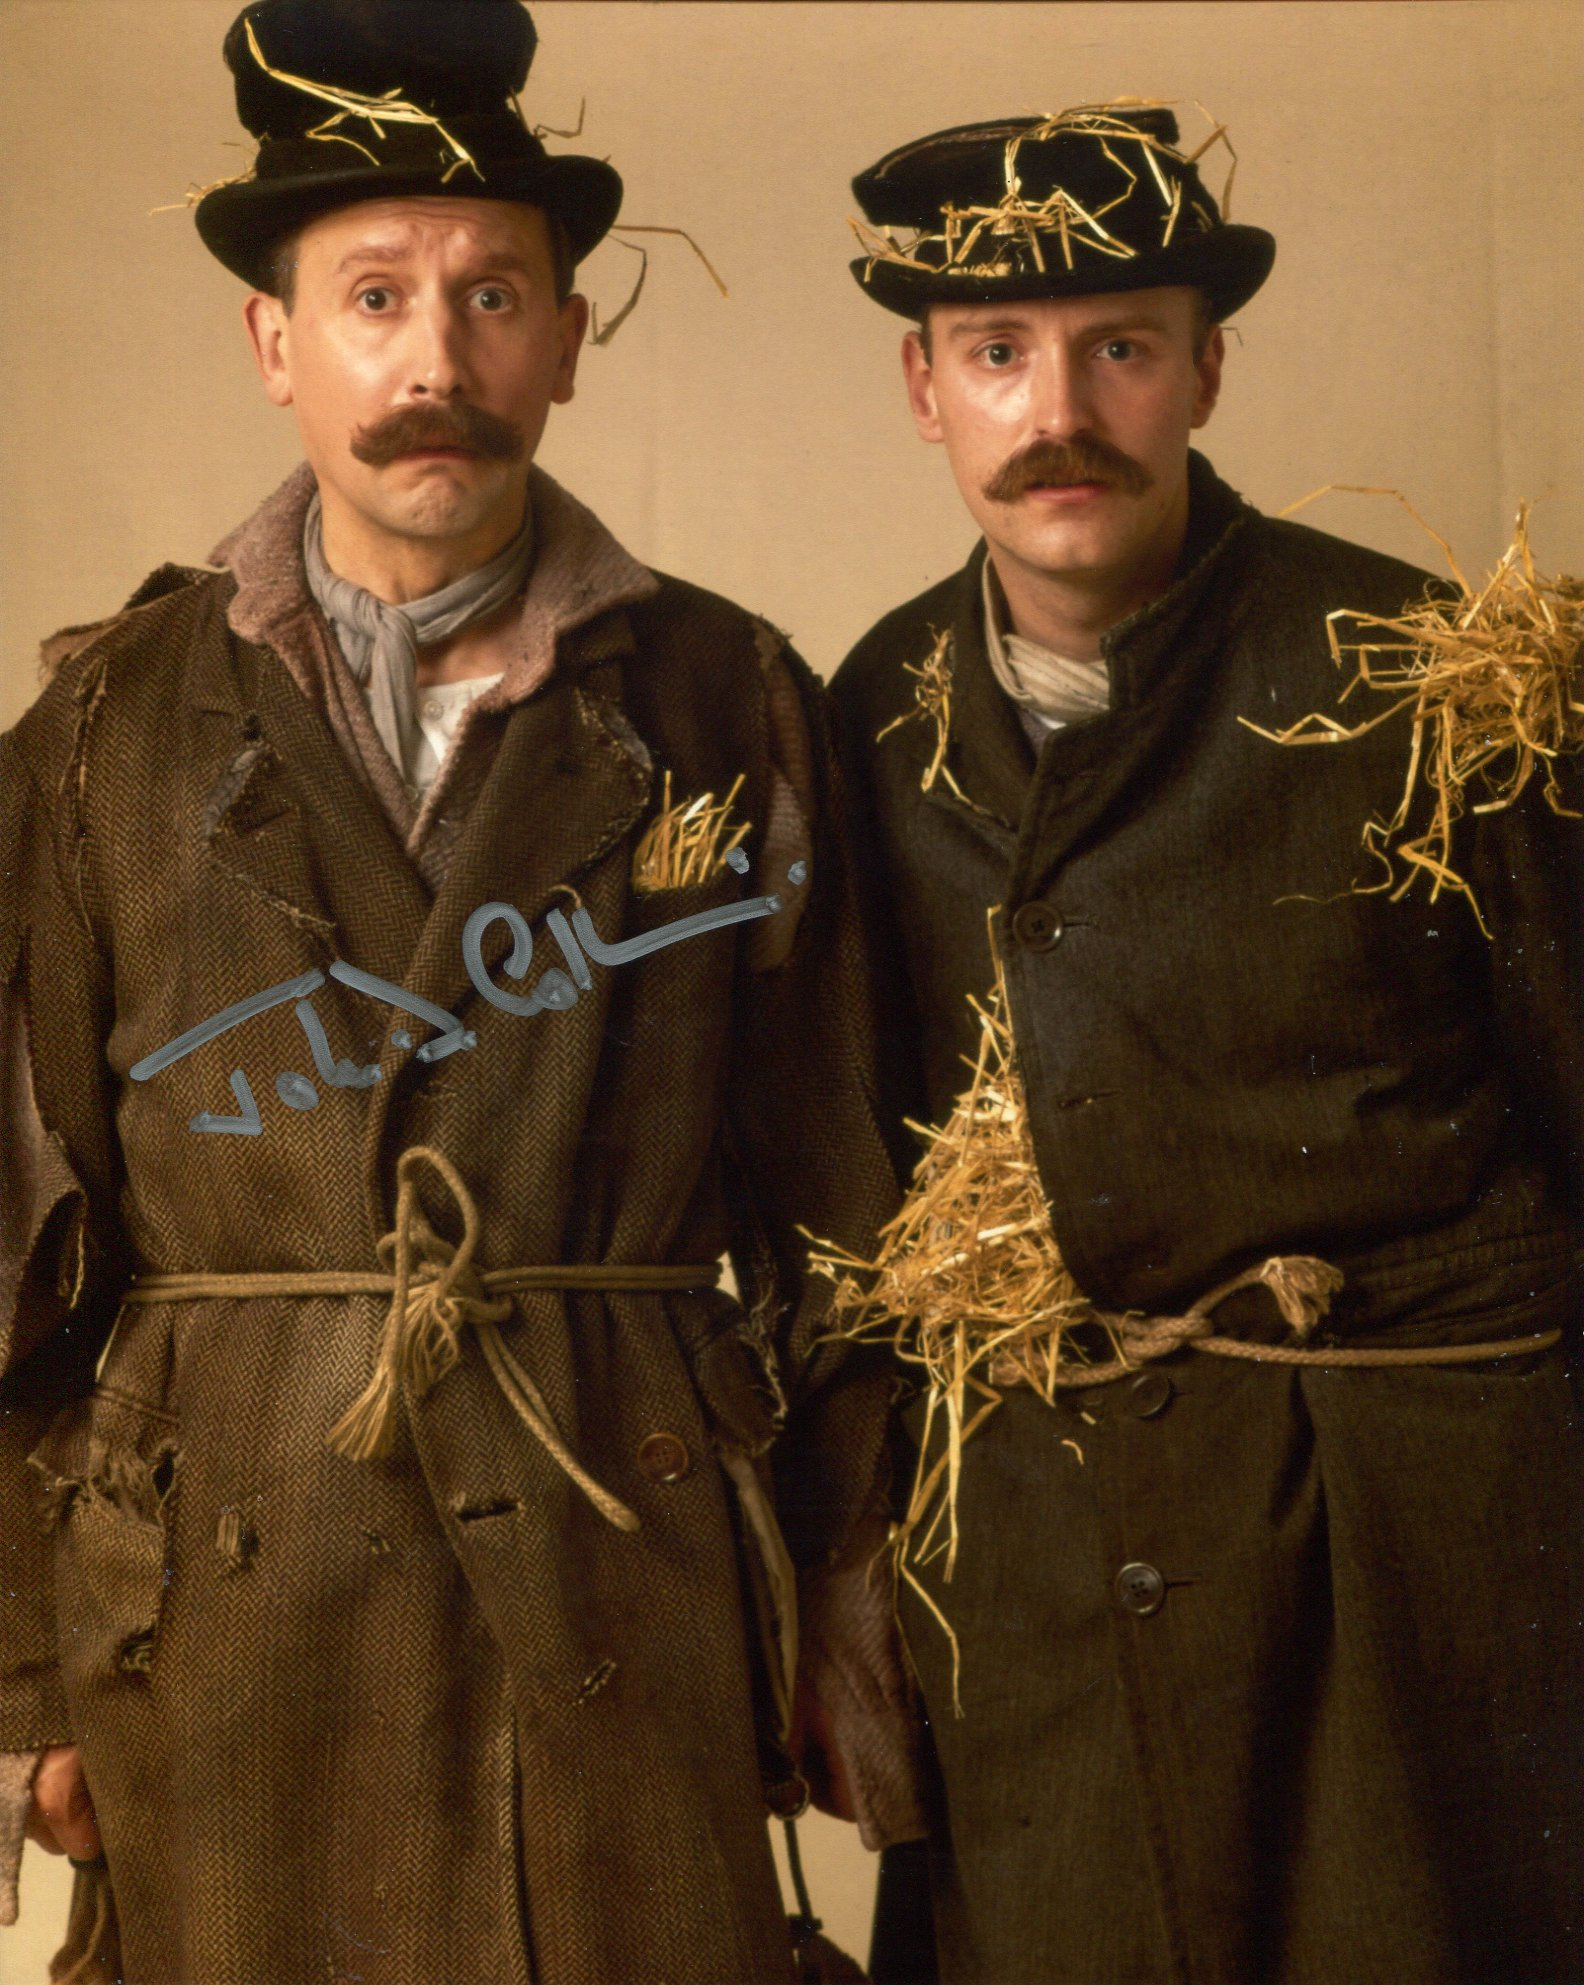 Allo Allo, 8x10 photo from the comedy Allo Allo signed by actor John D Collins who played one of the